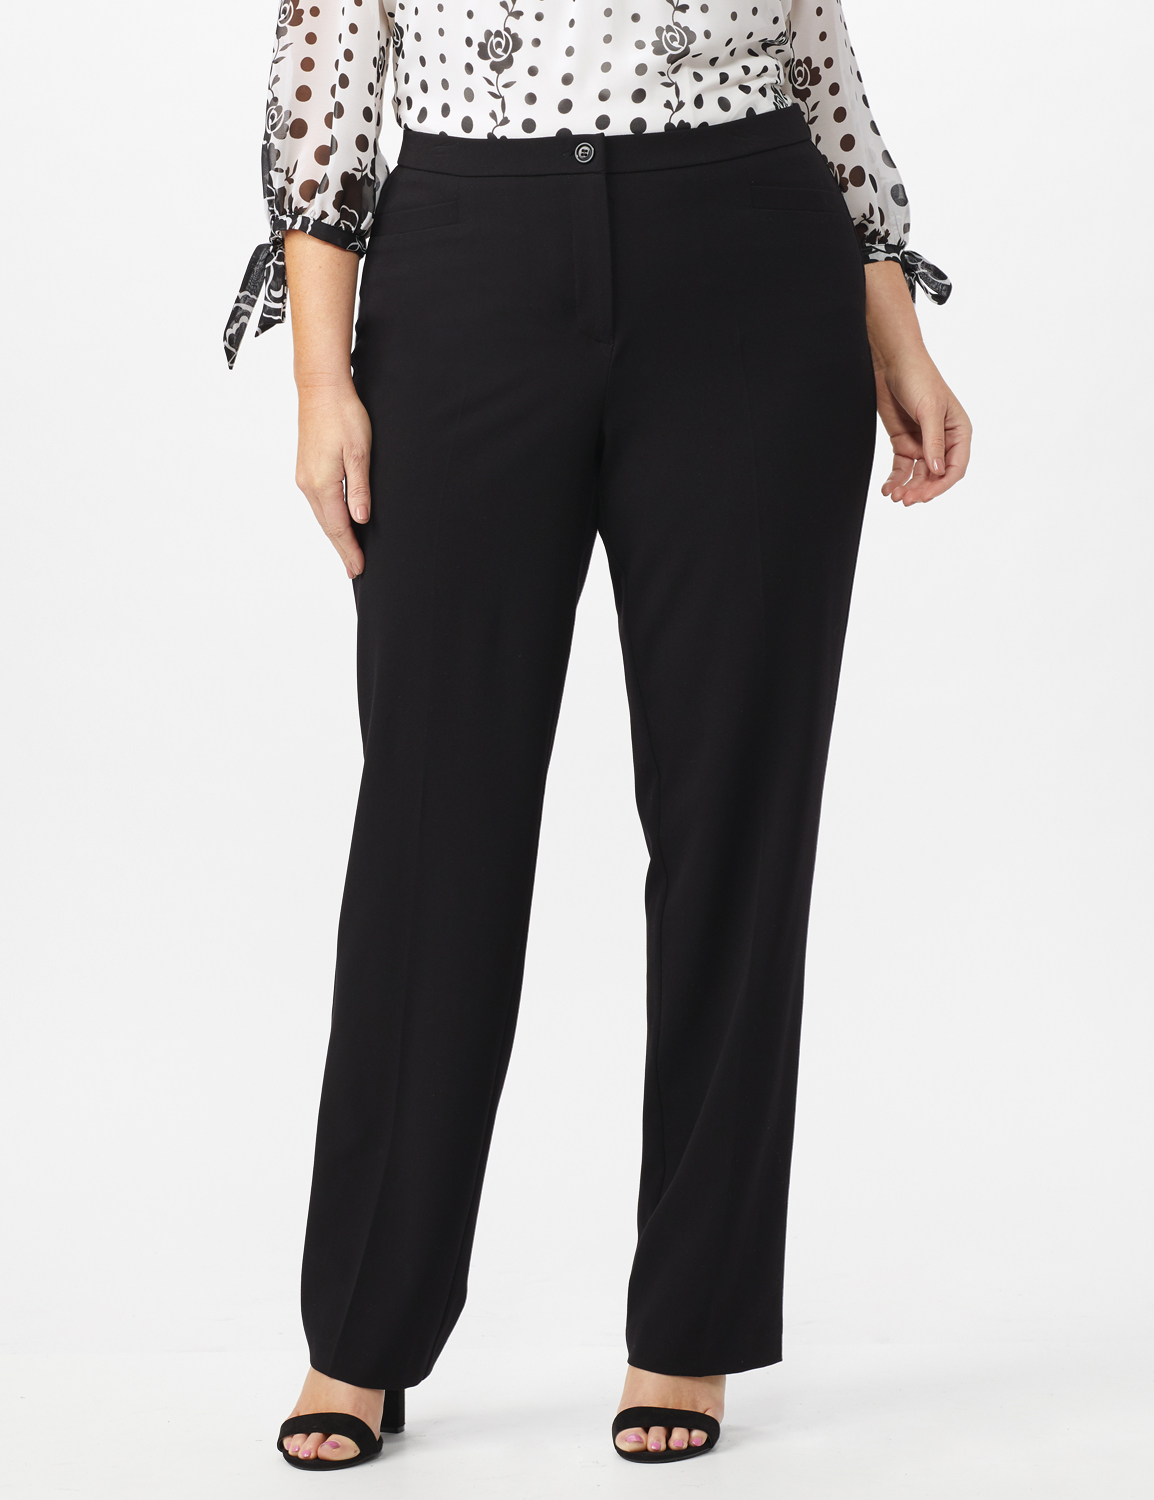 Roz & Ali  Plus Secret Agent Trouser  Pants with Cat Eye Pockets & Zip -Black - Front